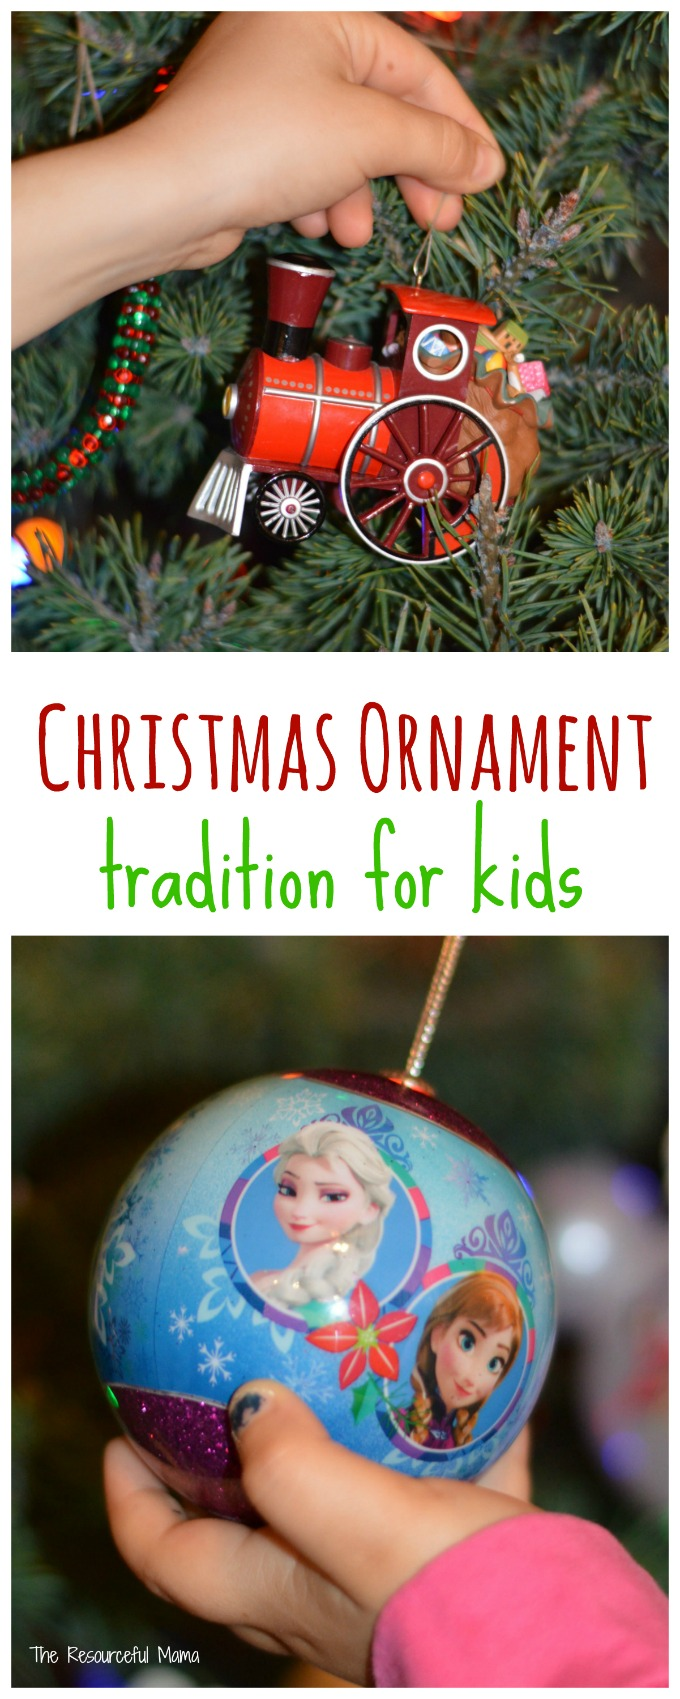 ornament-tradition-for-kids